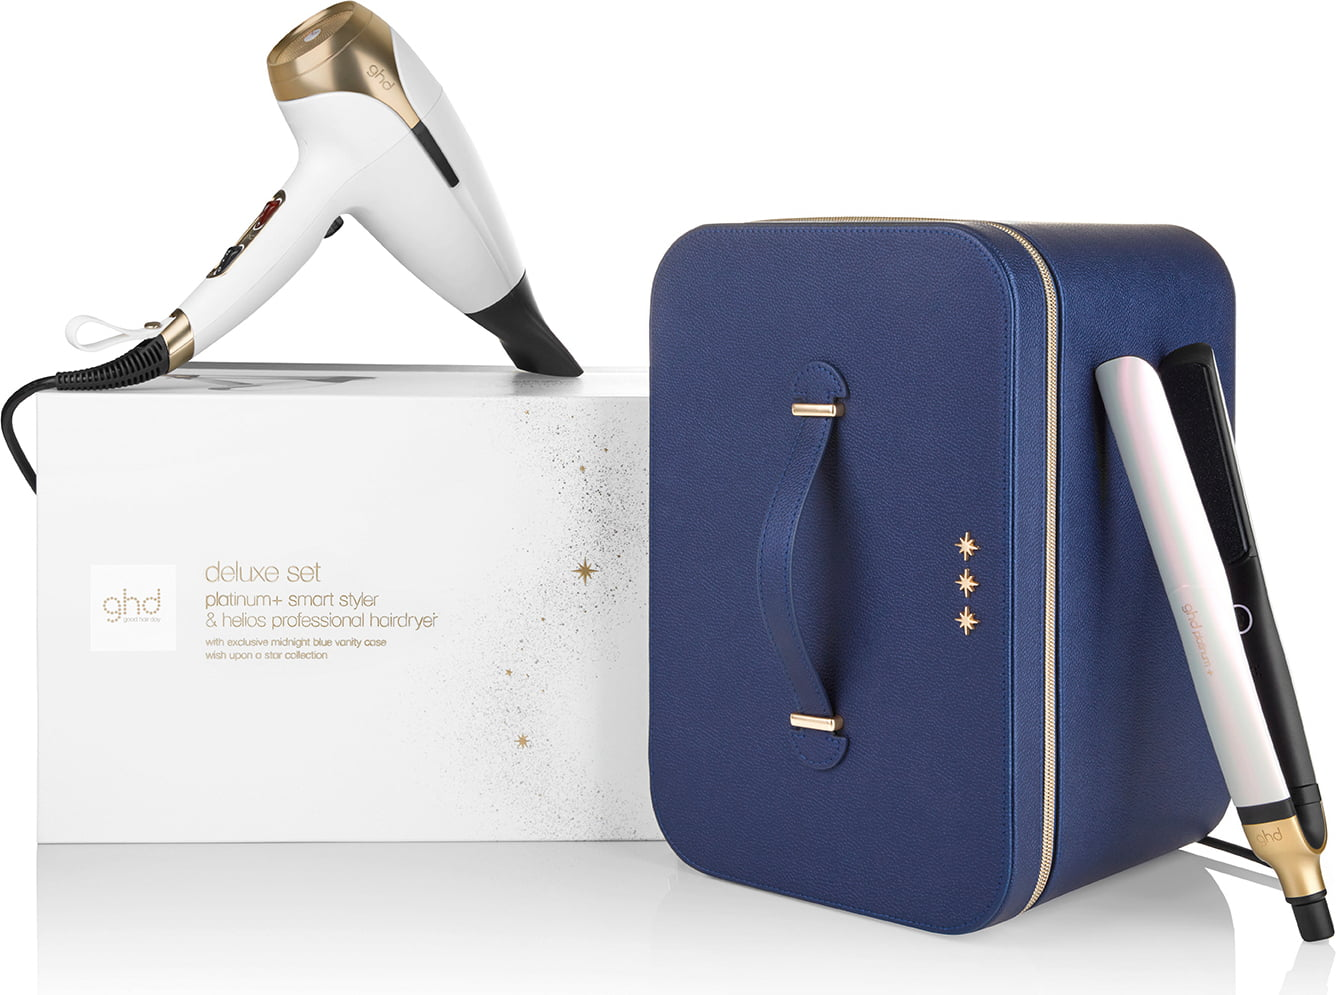 The Gift Guide: Hair Tools and Gift Sets